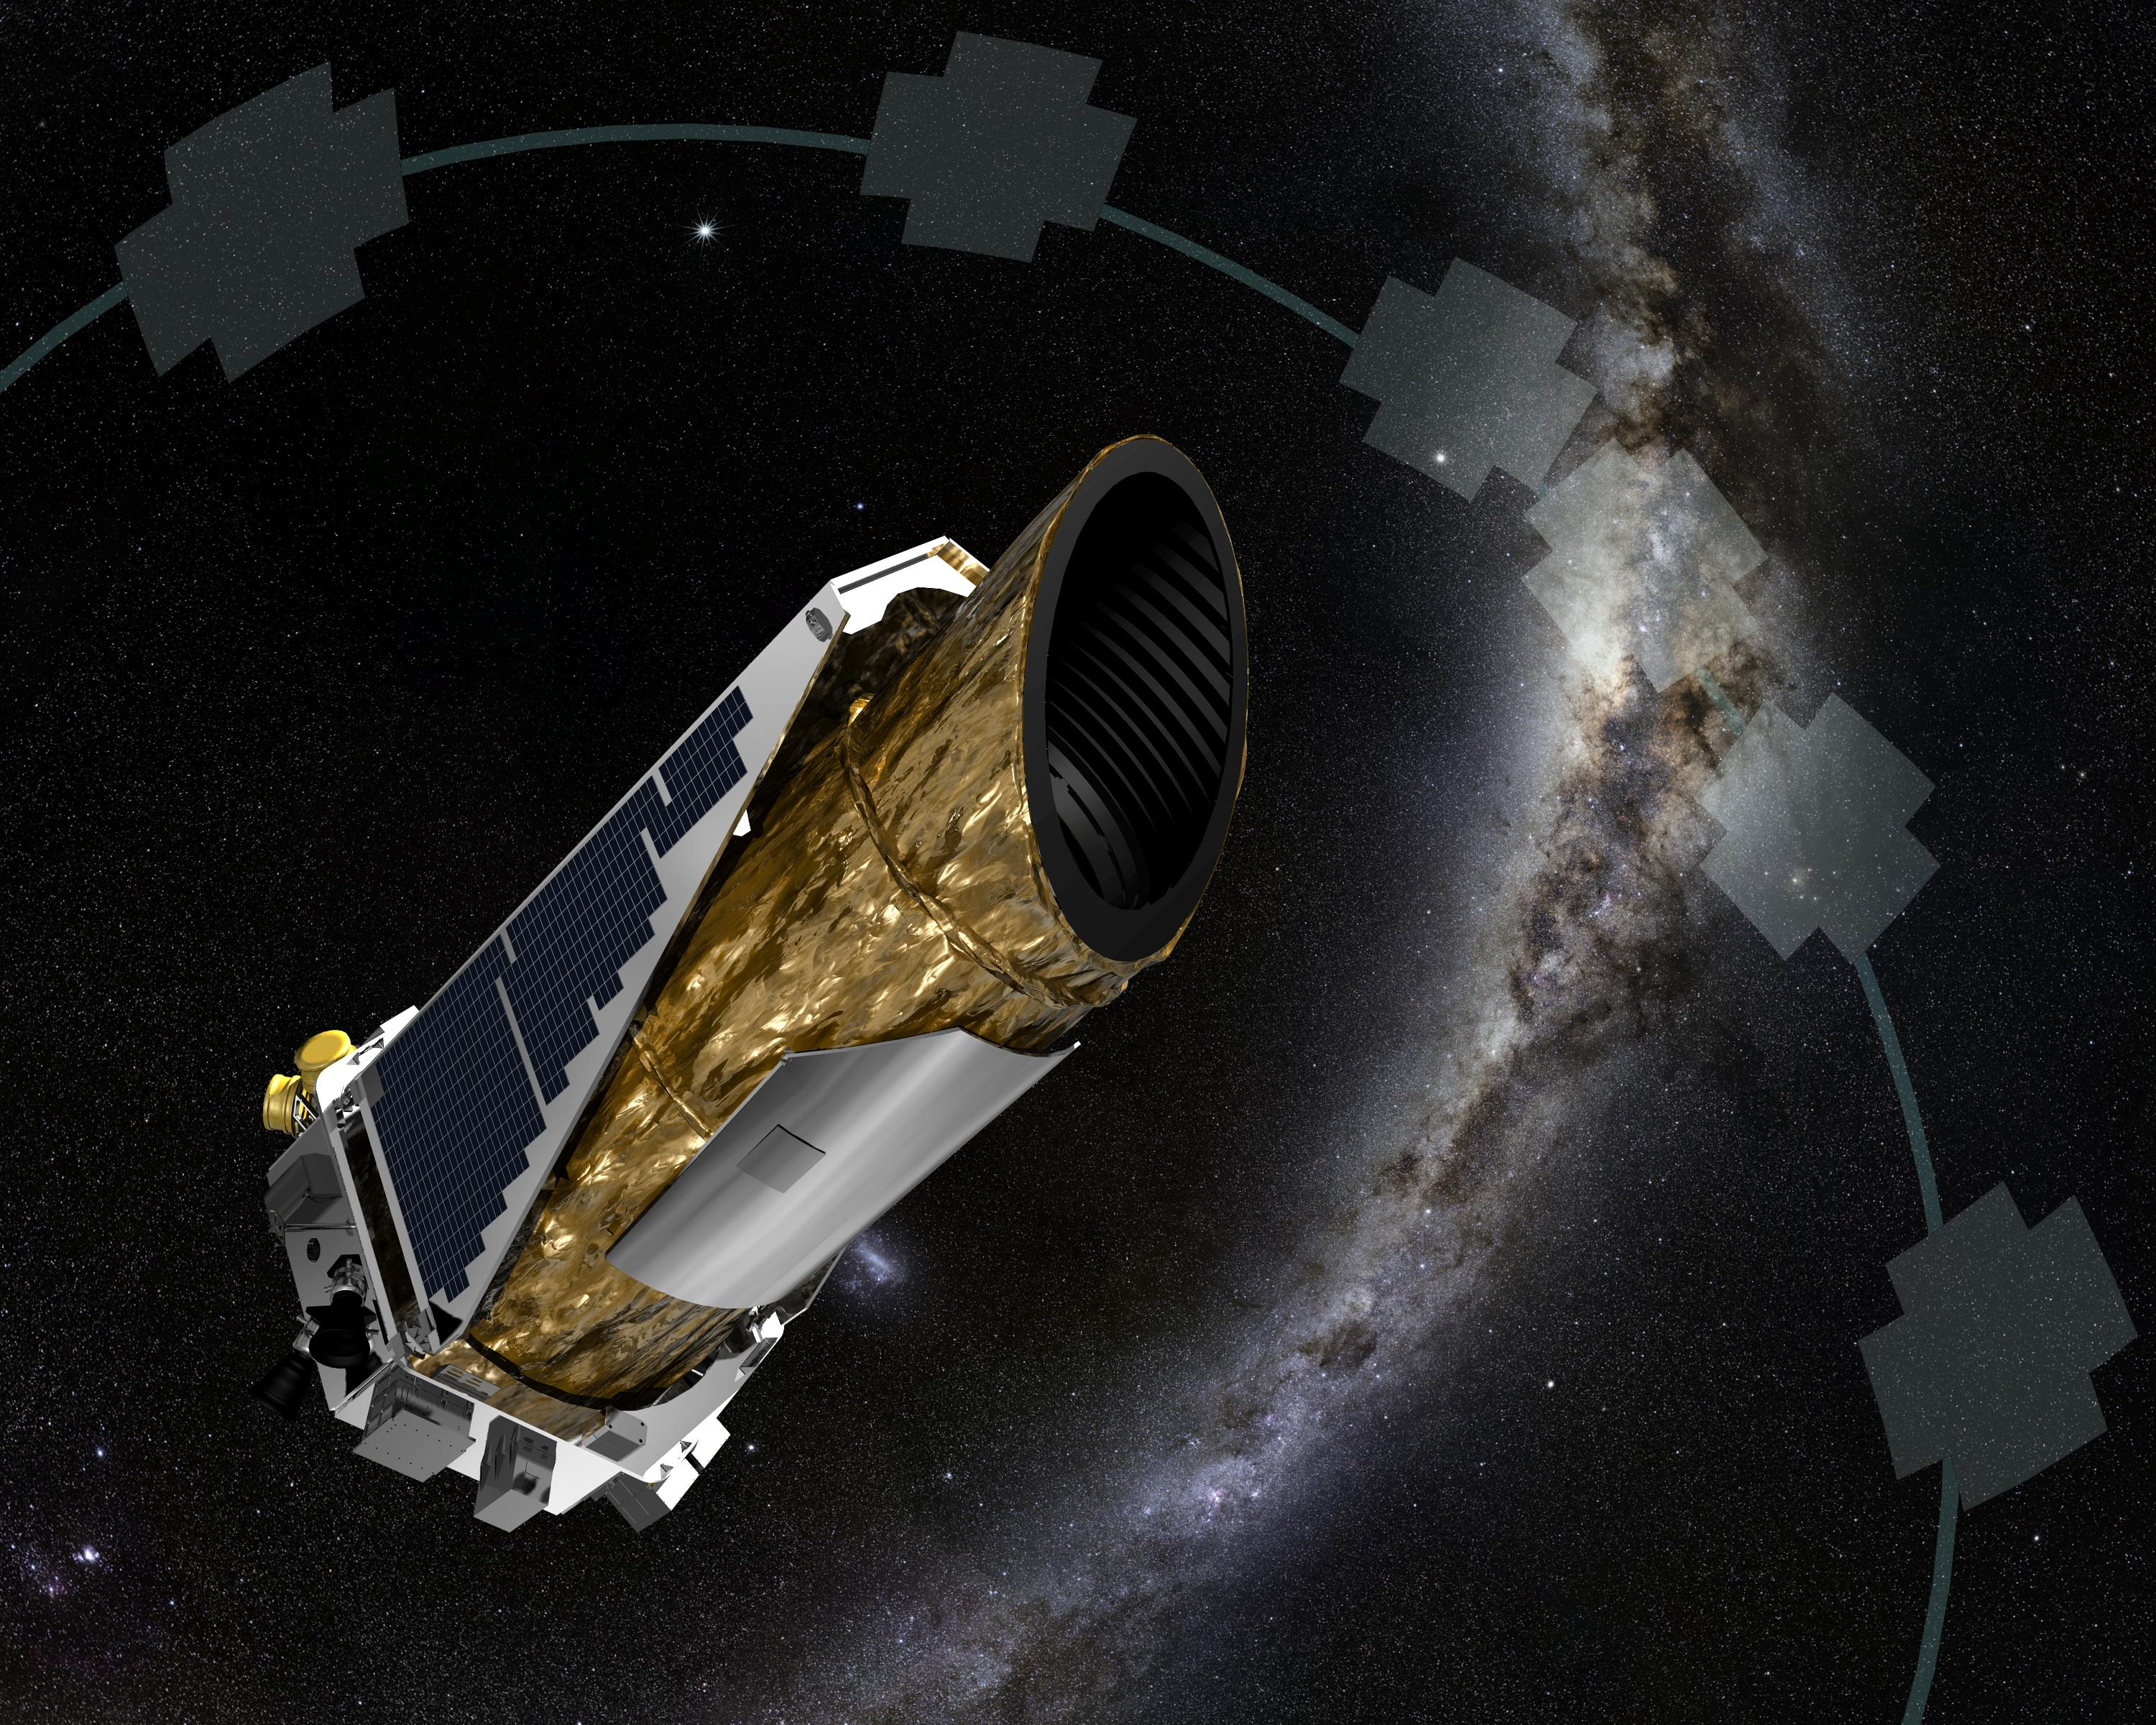 NASA's Kepler Comes Roaring Back with 100 New Exoplanet Finds